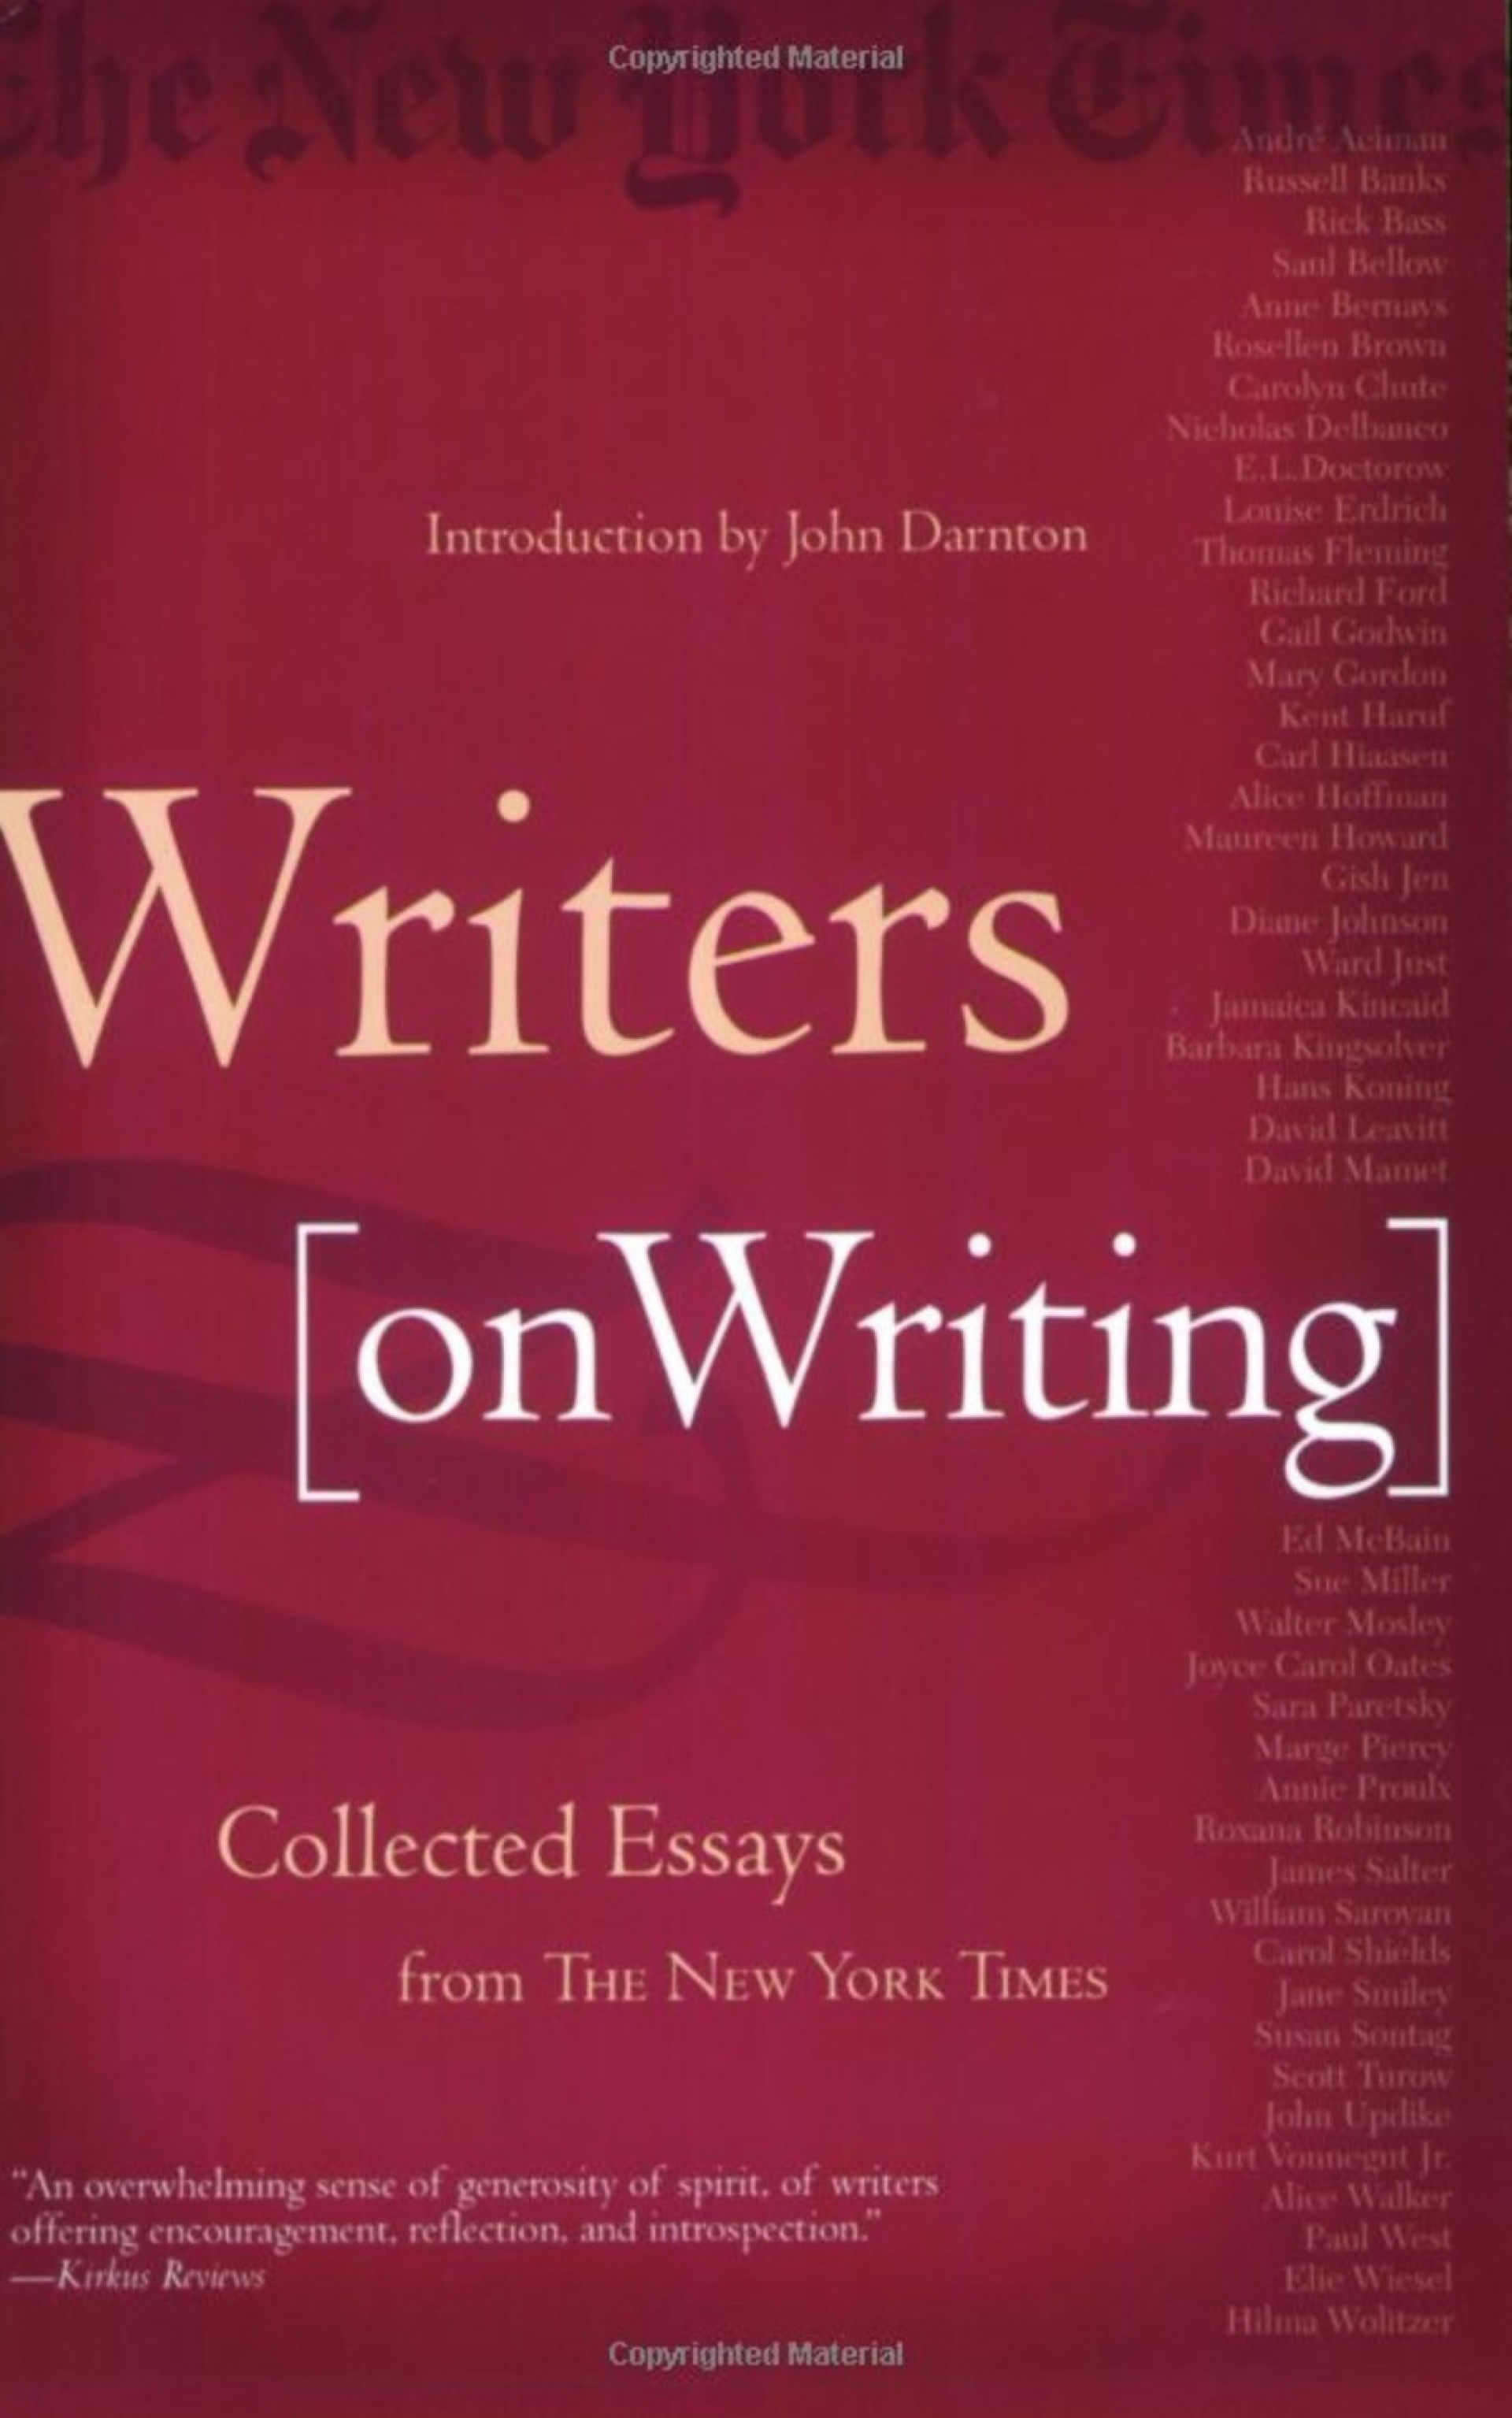 023 Collected Essays Essay Example Cover Writers On Rare The Journalism And Letters Of George Orwell Volume 3 Ralph Ellison Aldous Huxley Pdf 1920